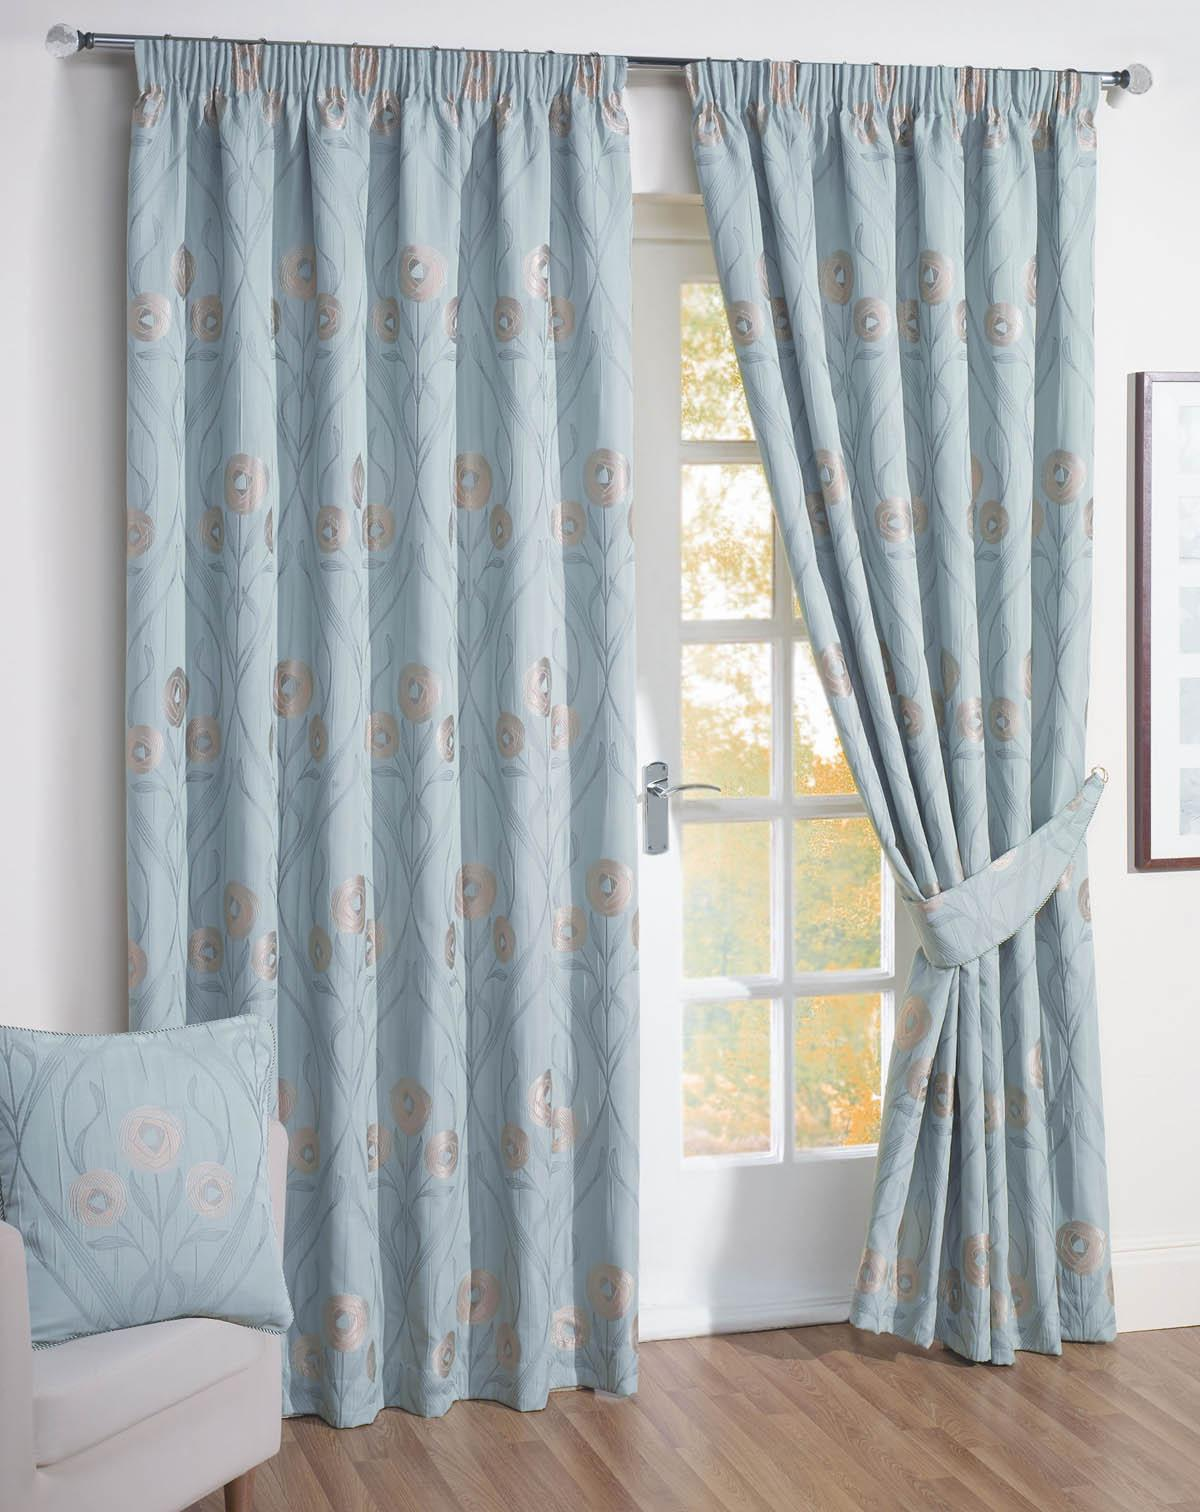 Duckegg Montrose Ready Made Curtains